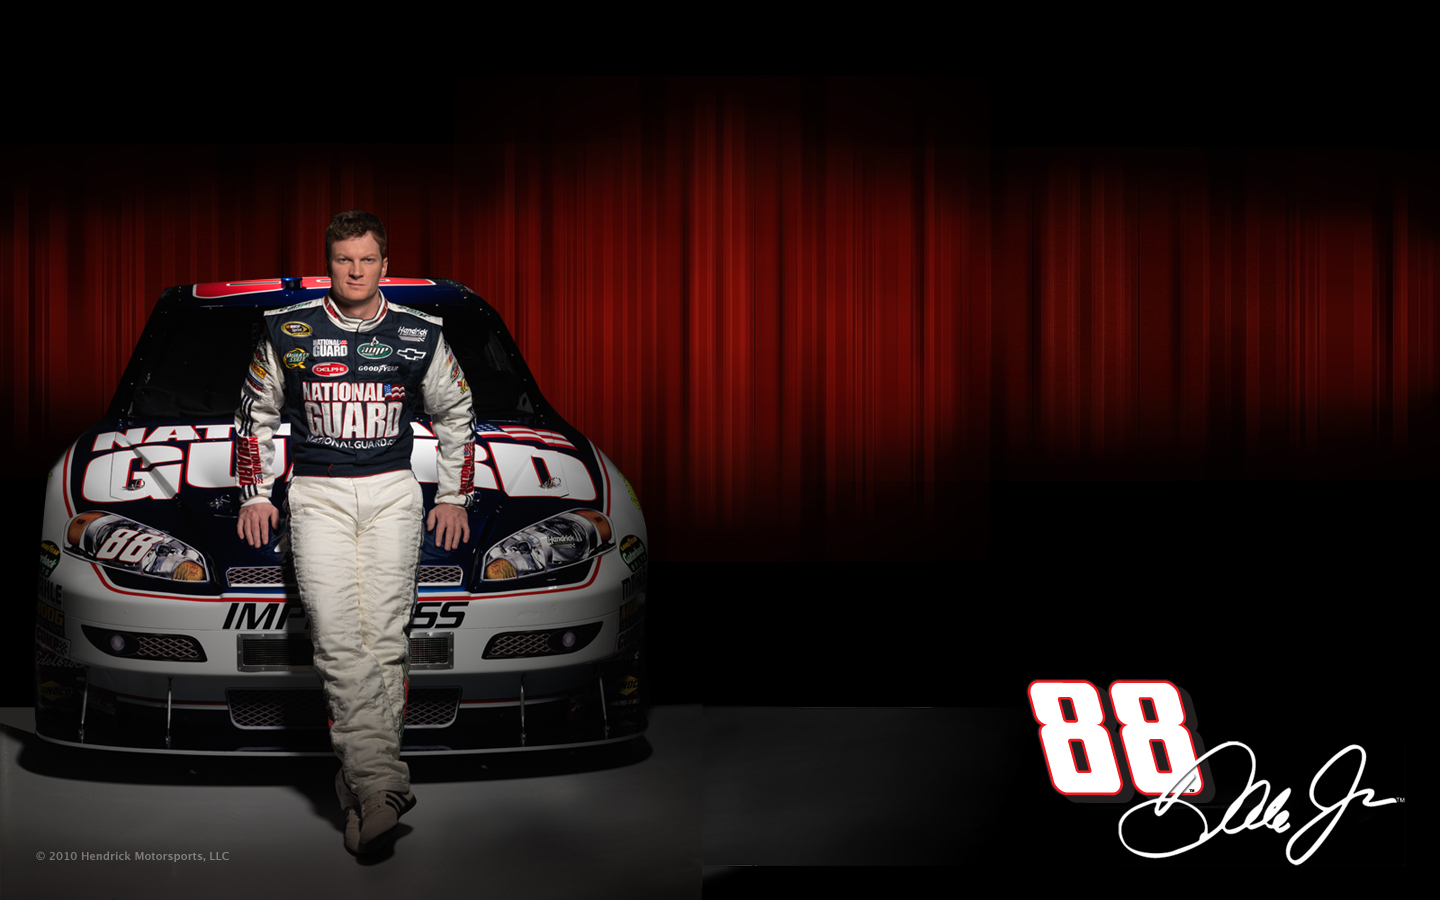 Dale Earnhardt Wallpaper 63 Image Collections Of: Dale Earnhardt Wallpaper Desktop